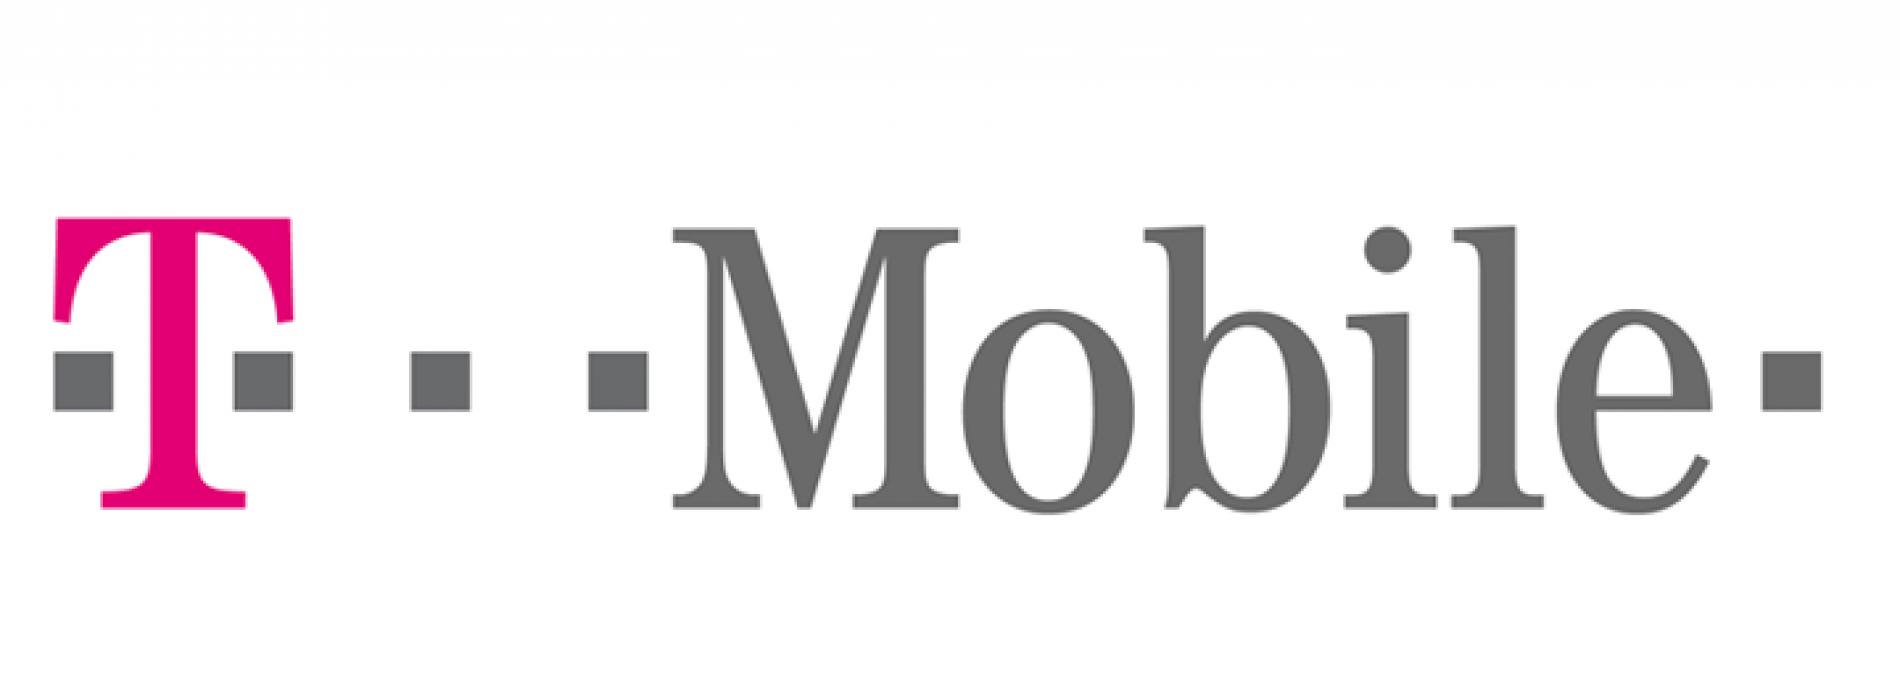 T-Mobile responds with fury To AT&T's newspaper ads